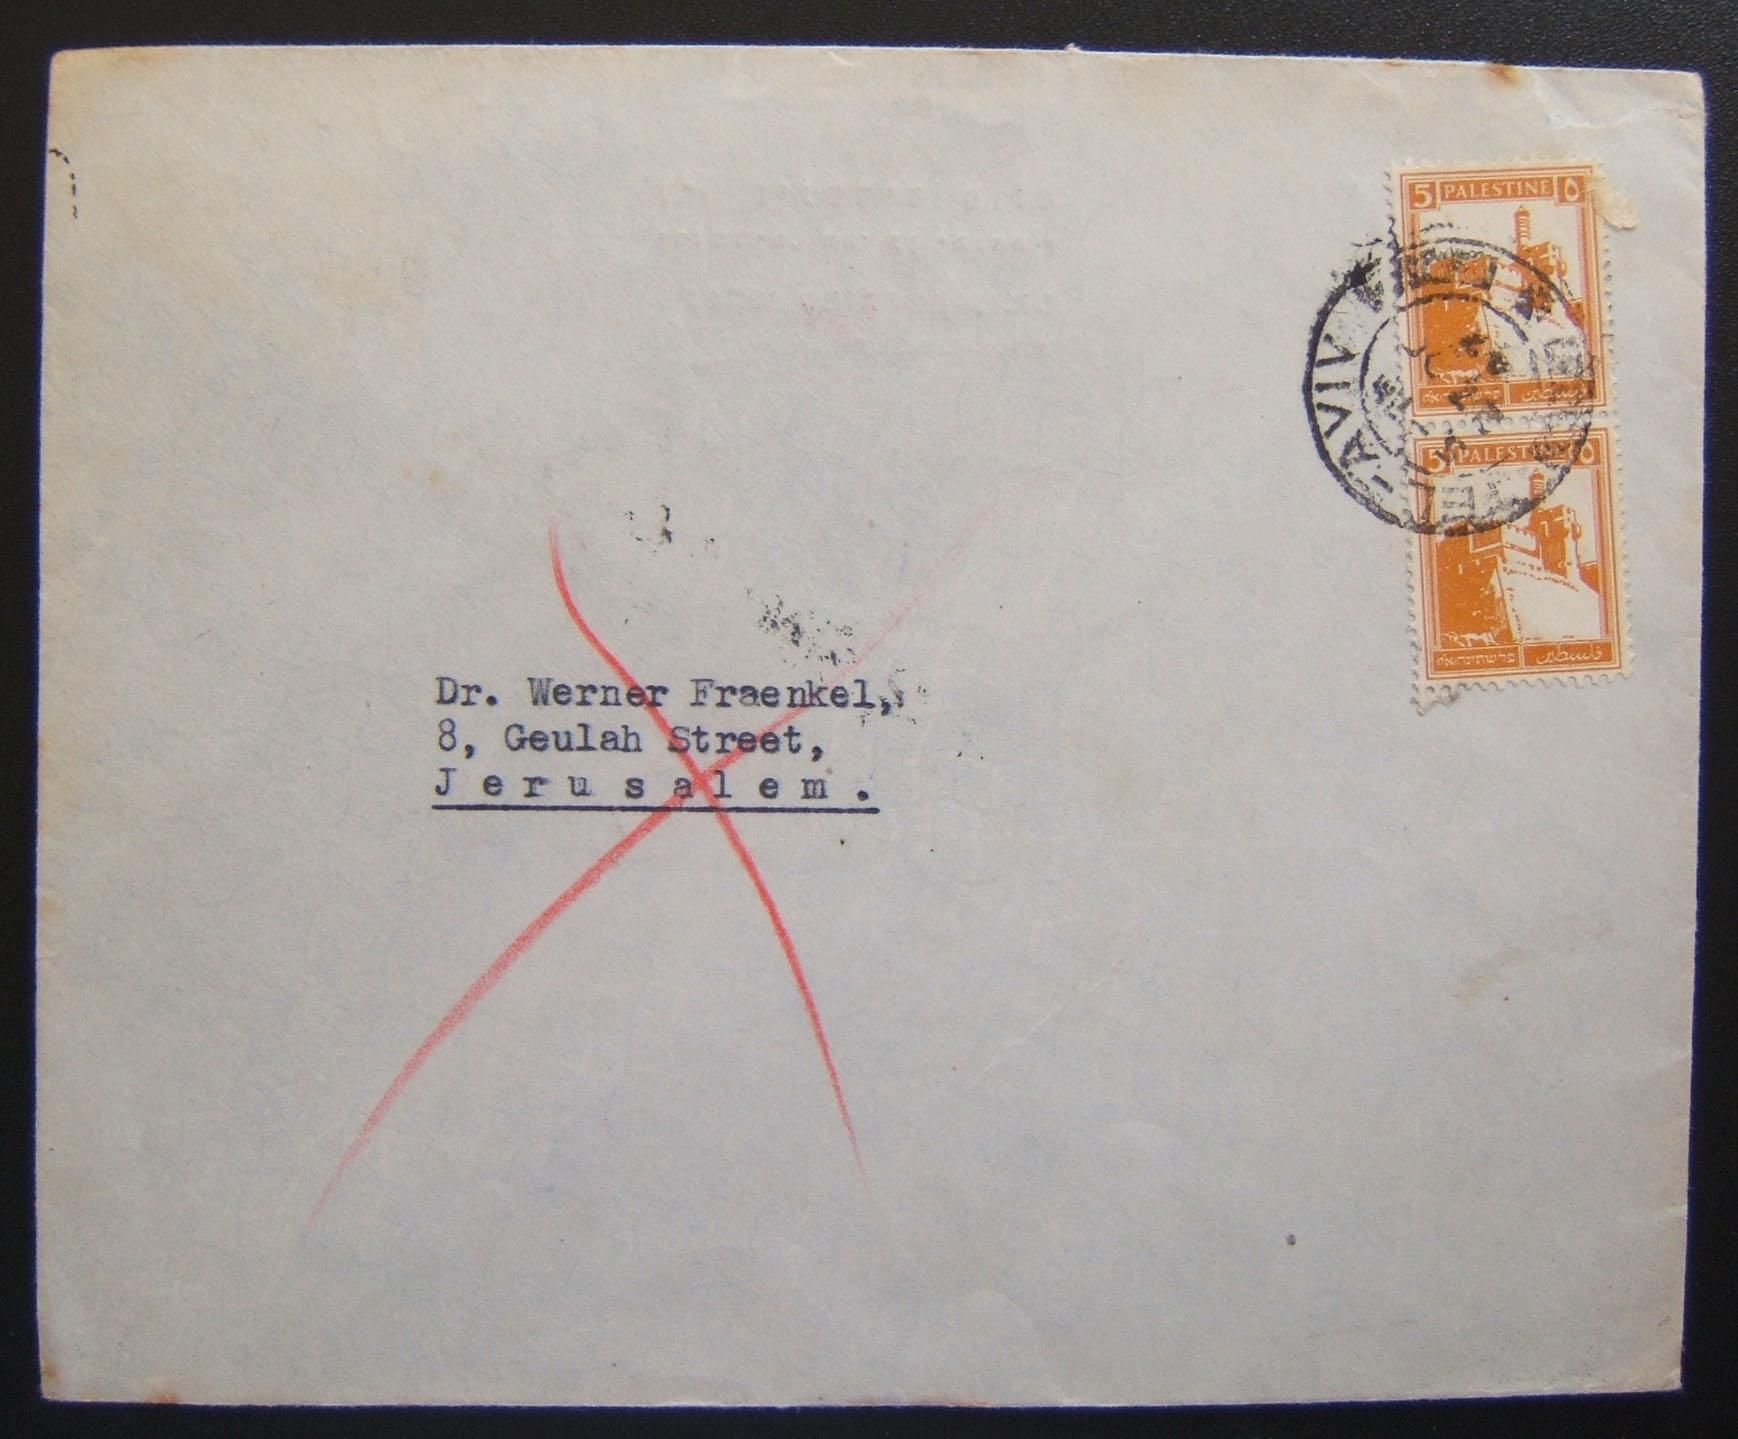 1947 Mandatory returned mail: 27 OC 47 comm cv ex TLV to J'LEM franked 10m at period letter rate using vert pair Pictorals Ba93 tied by single strike of local pmk; received J'lem o